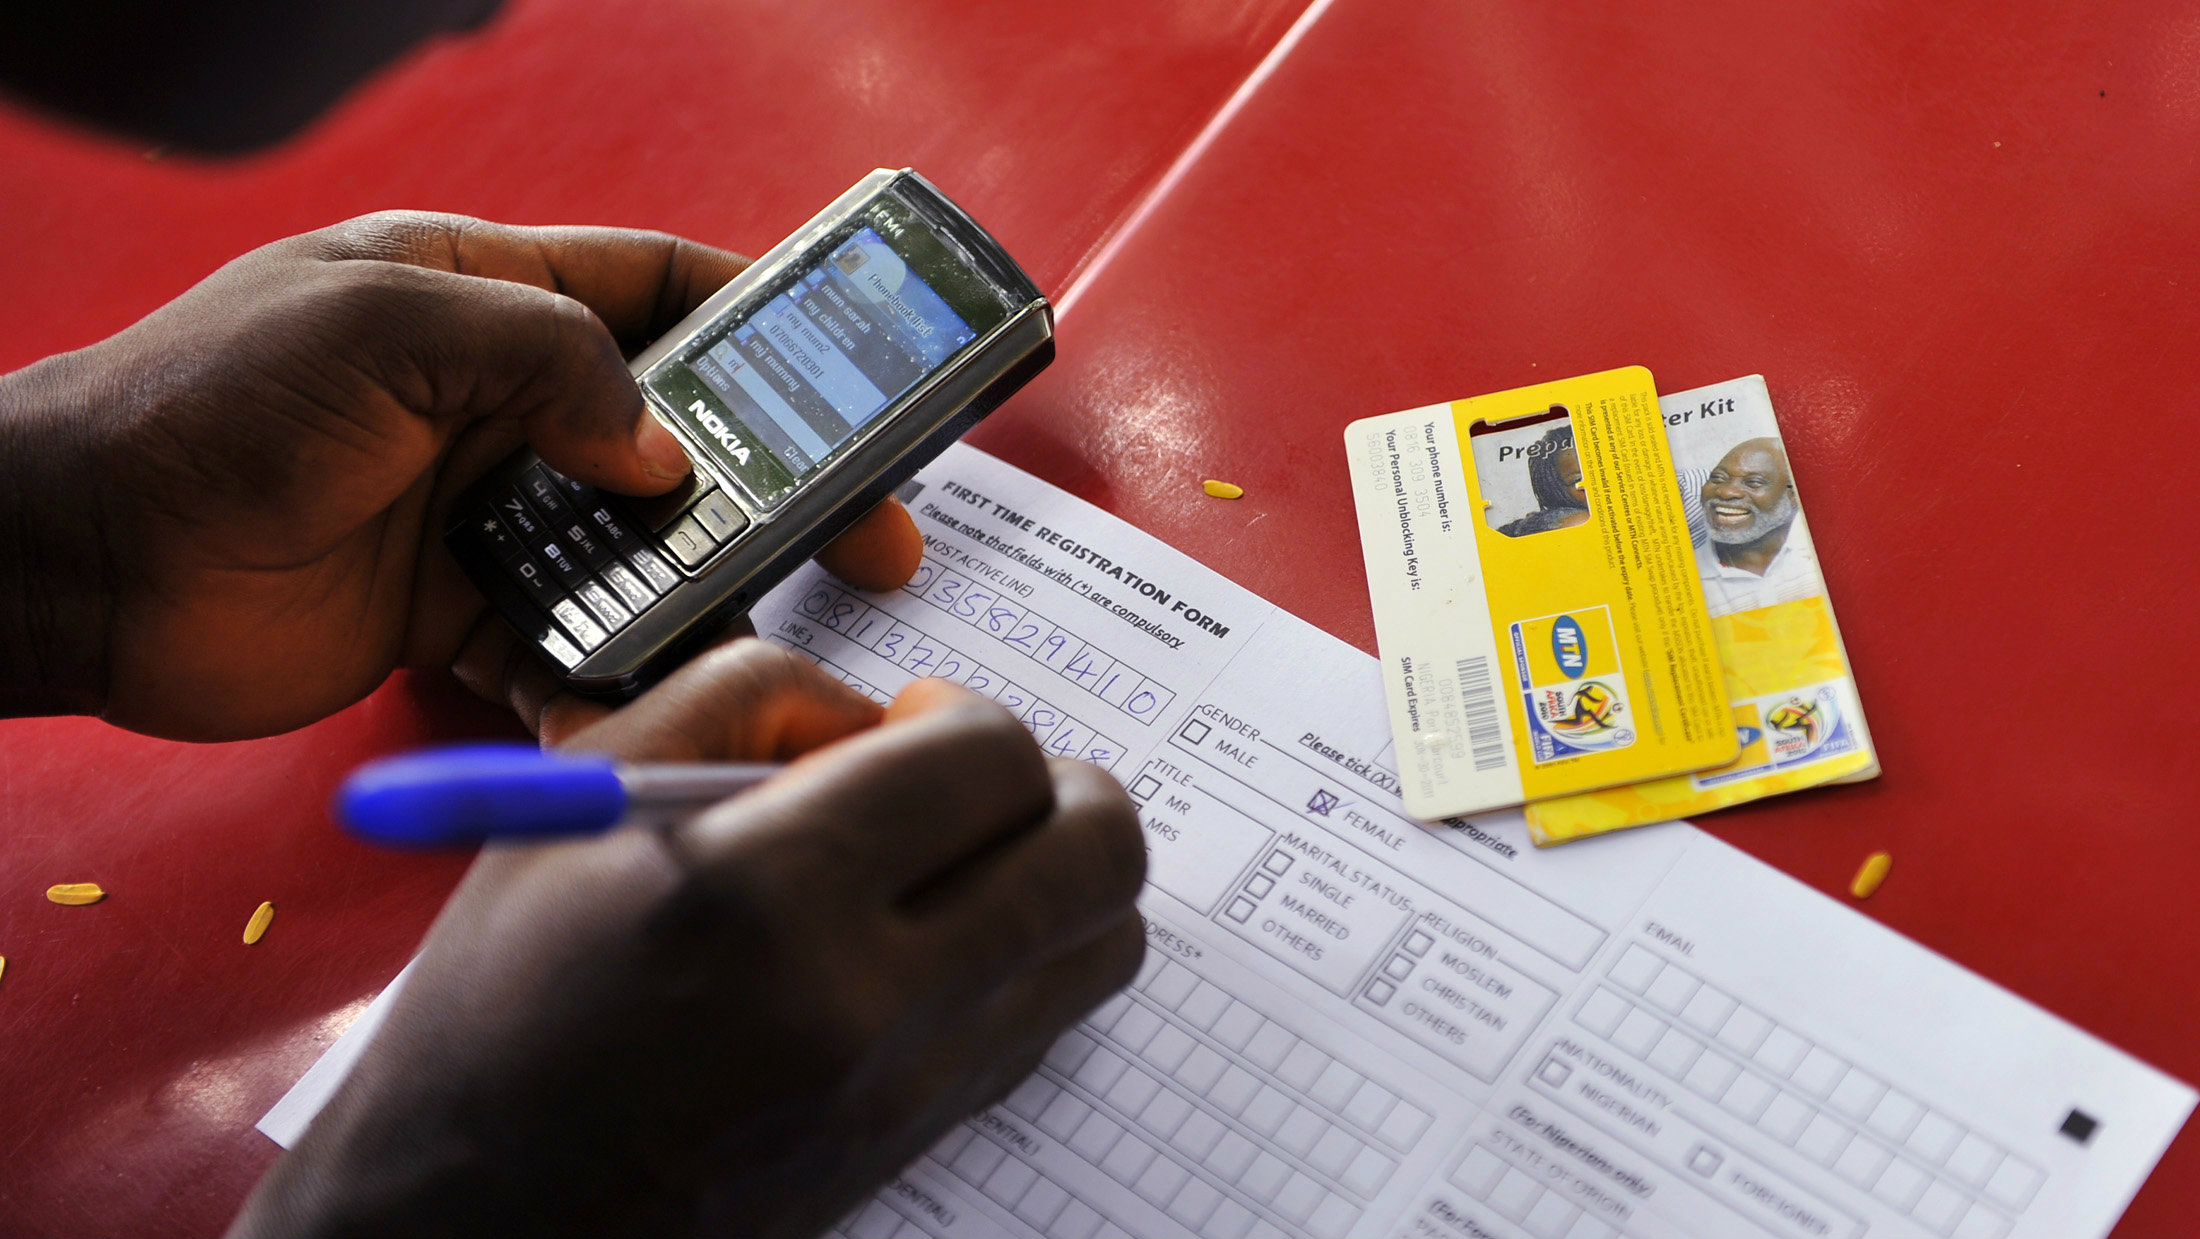 An official of MTN, a mobile telecommunications company, registers a SIM card as he attends to customers at a makeshift SIM card registration centre in Nigeria's capital Abuja August 3, 2010. The registration of new SIM cards is a recent move by the Nigeria Communications Commission to help crime prevention efforts in the country, local media reported.